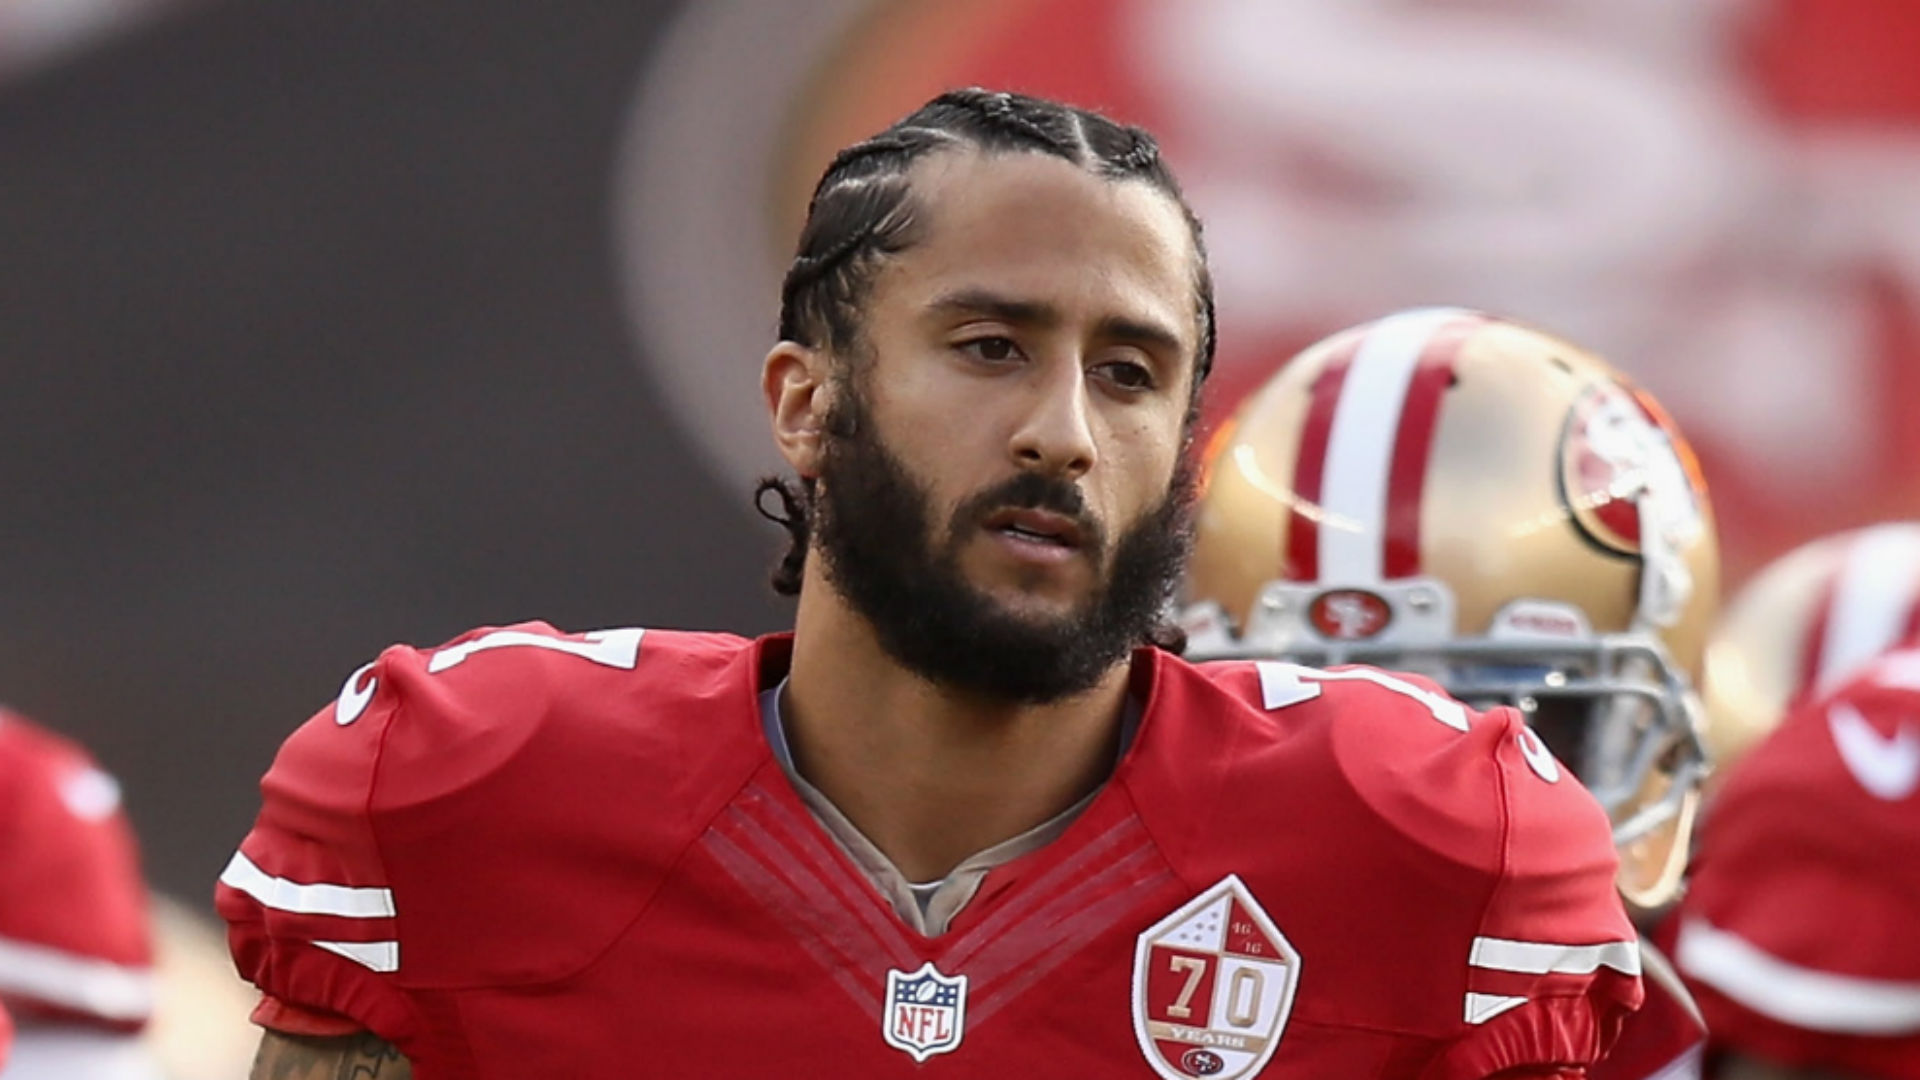 Image result for photos of Colin Kaepernick,